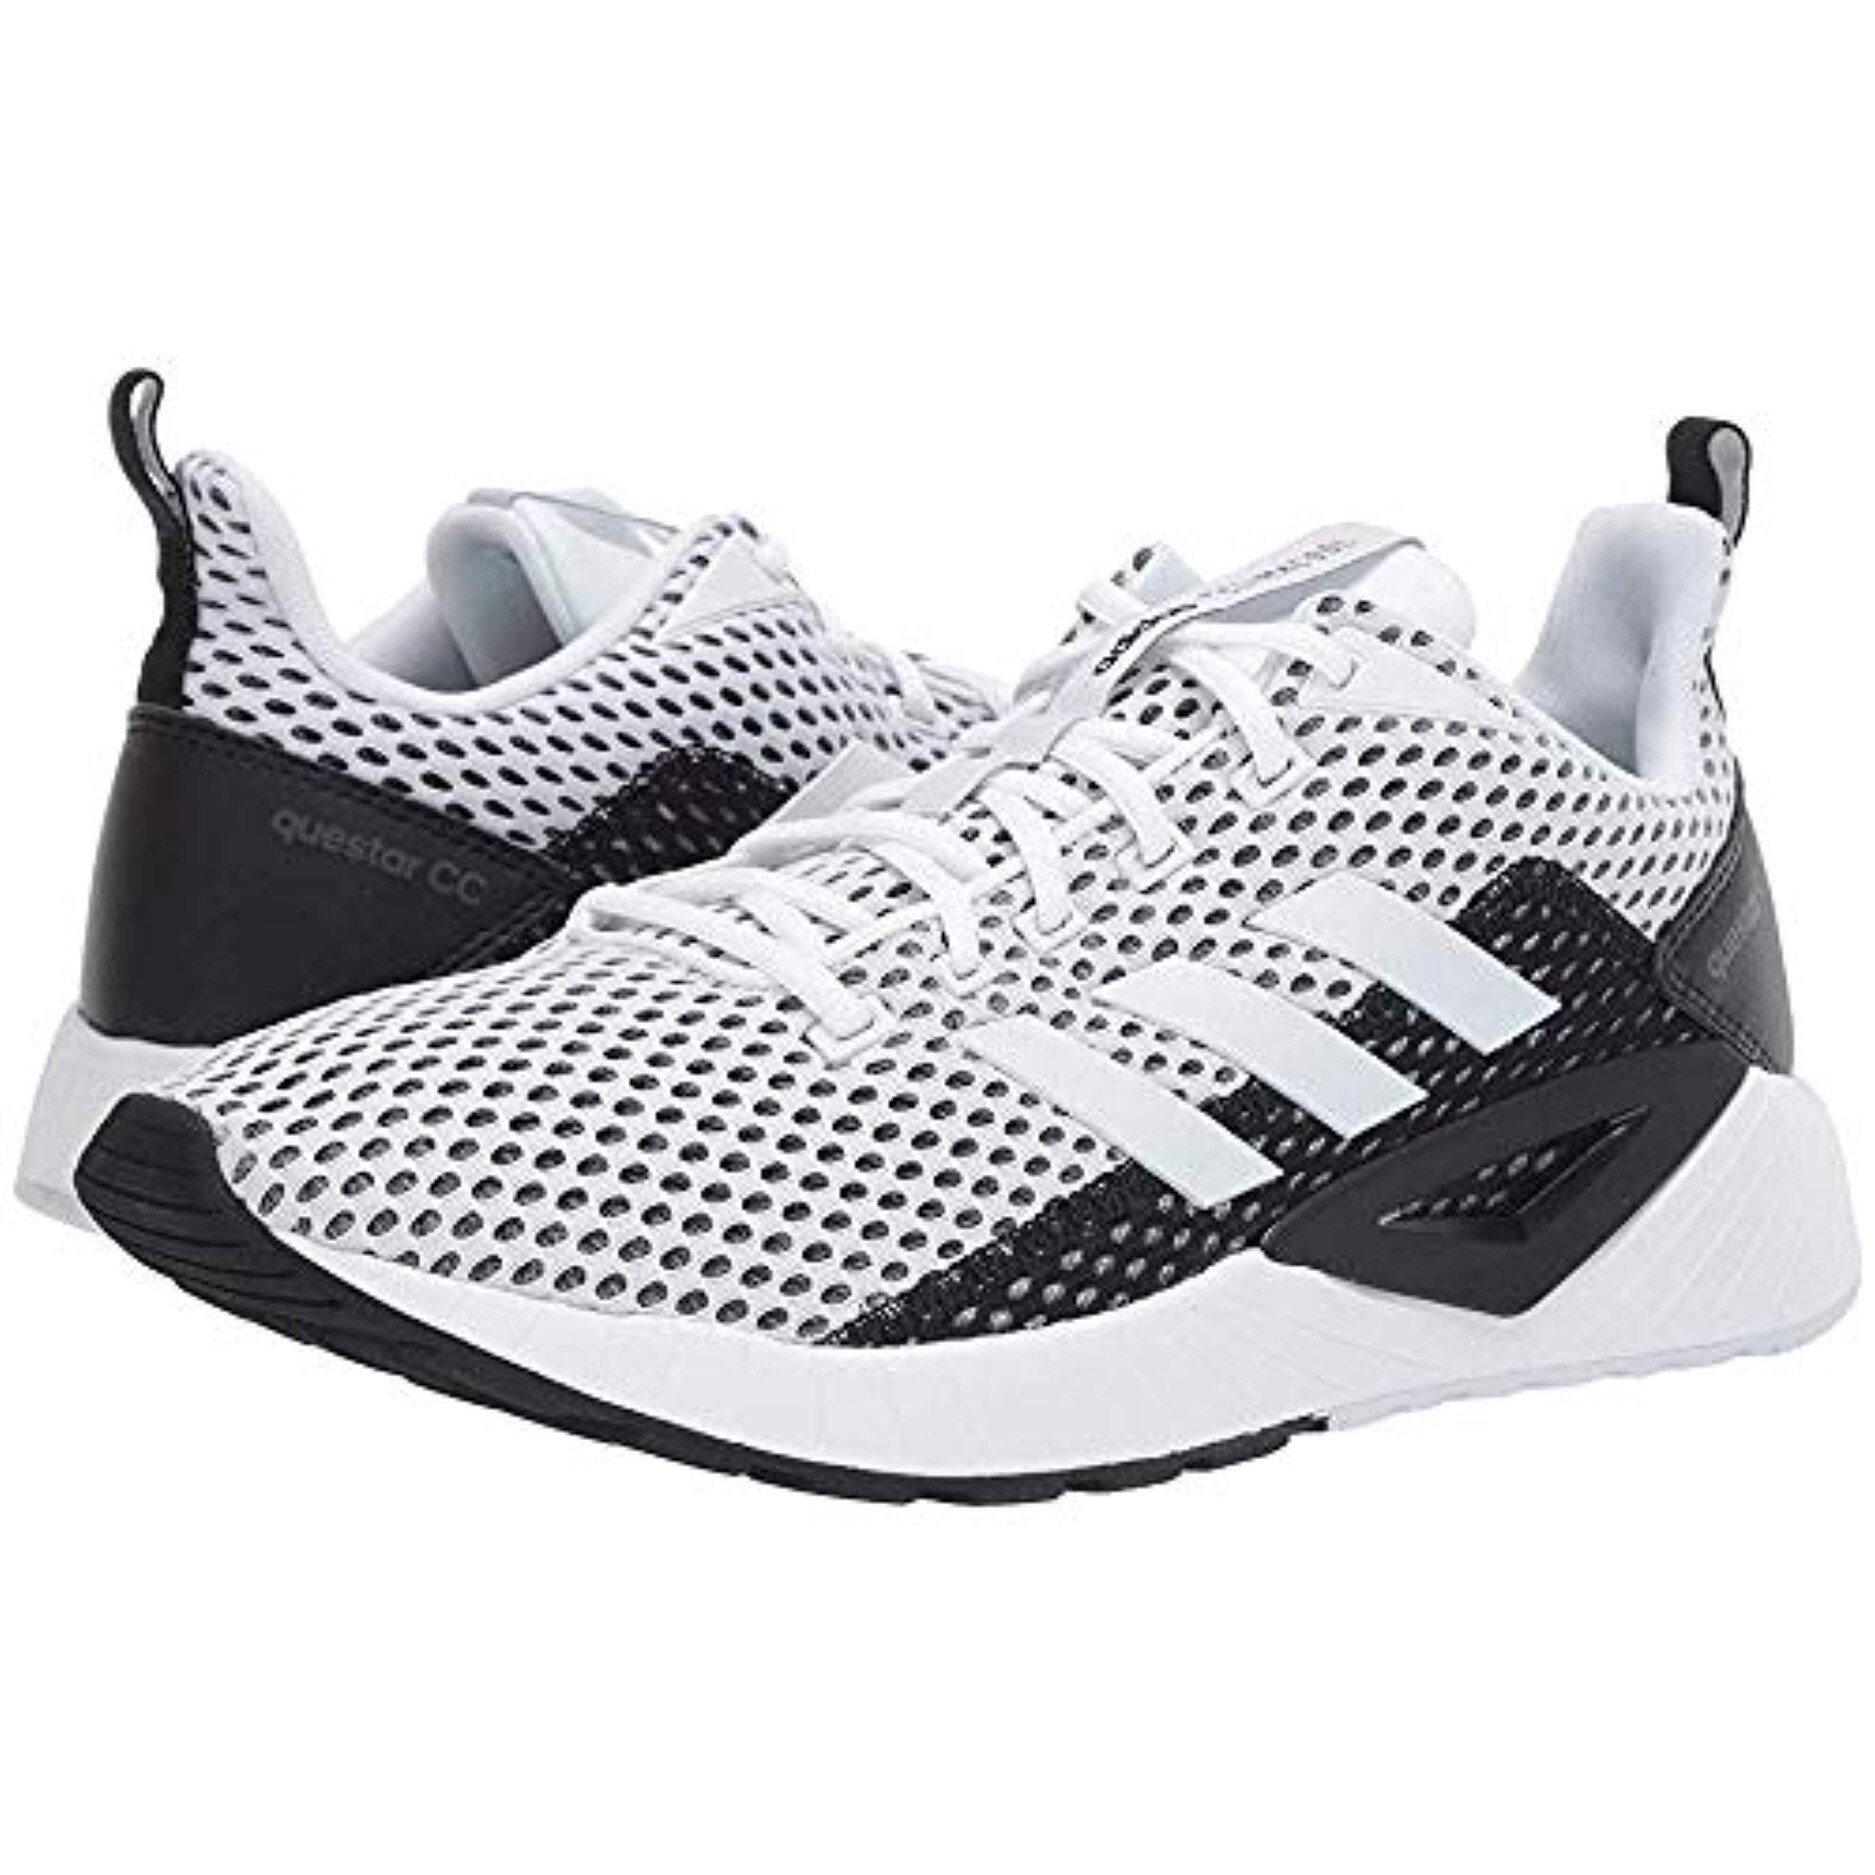 adidas Running Men's Questar Climacool Footwear WhiteFootwear WhiteCore Black 9 D US